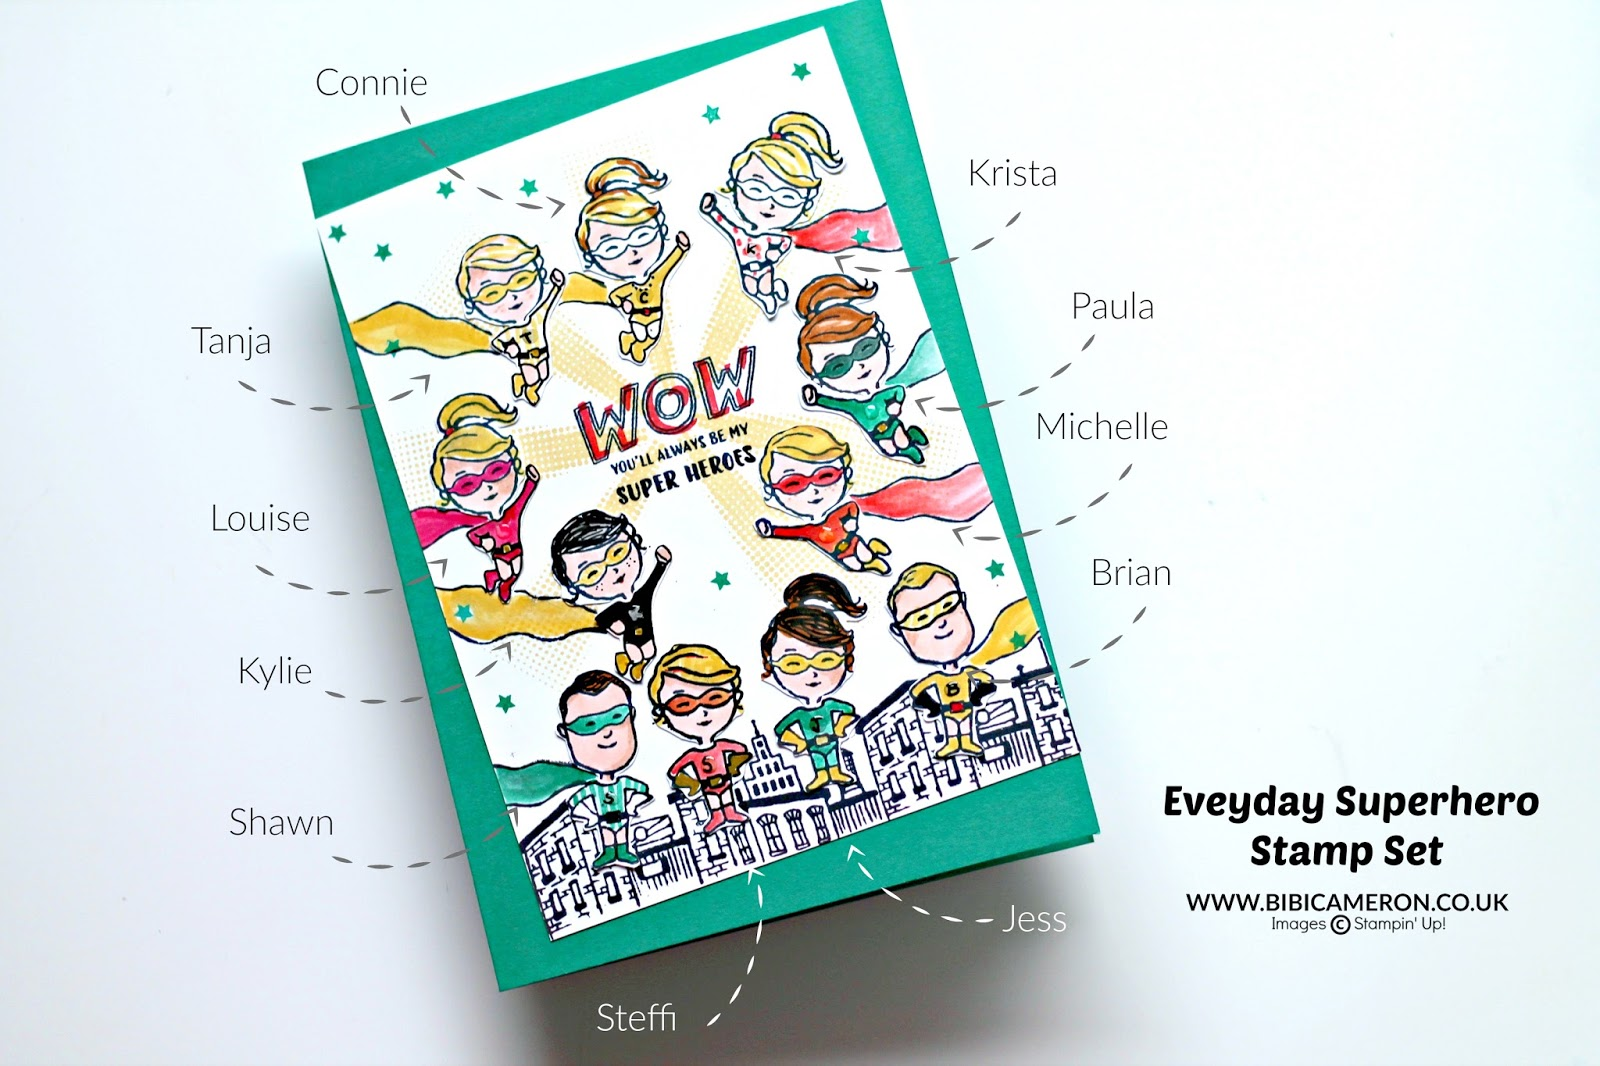 Saying bye to my Stampin Up Everyday Heroes | GDP 073